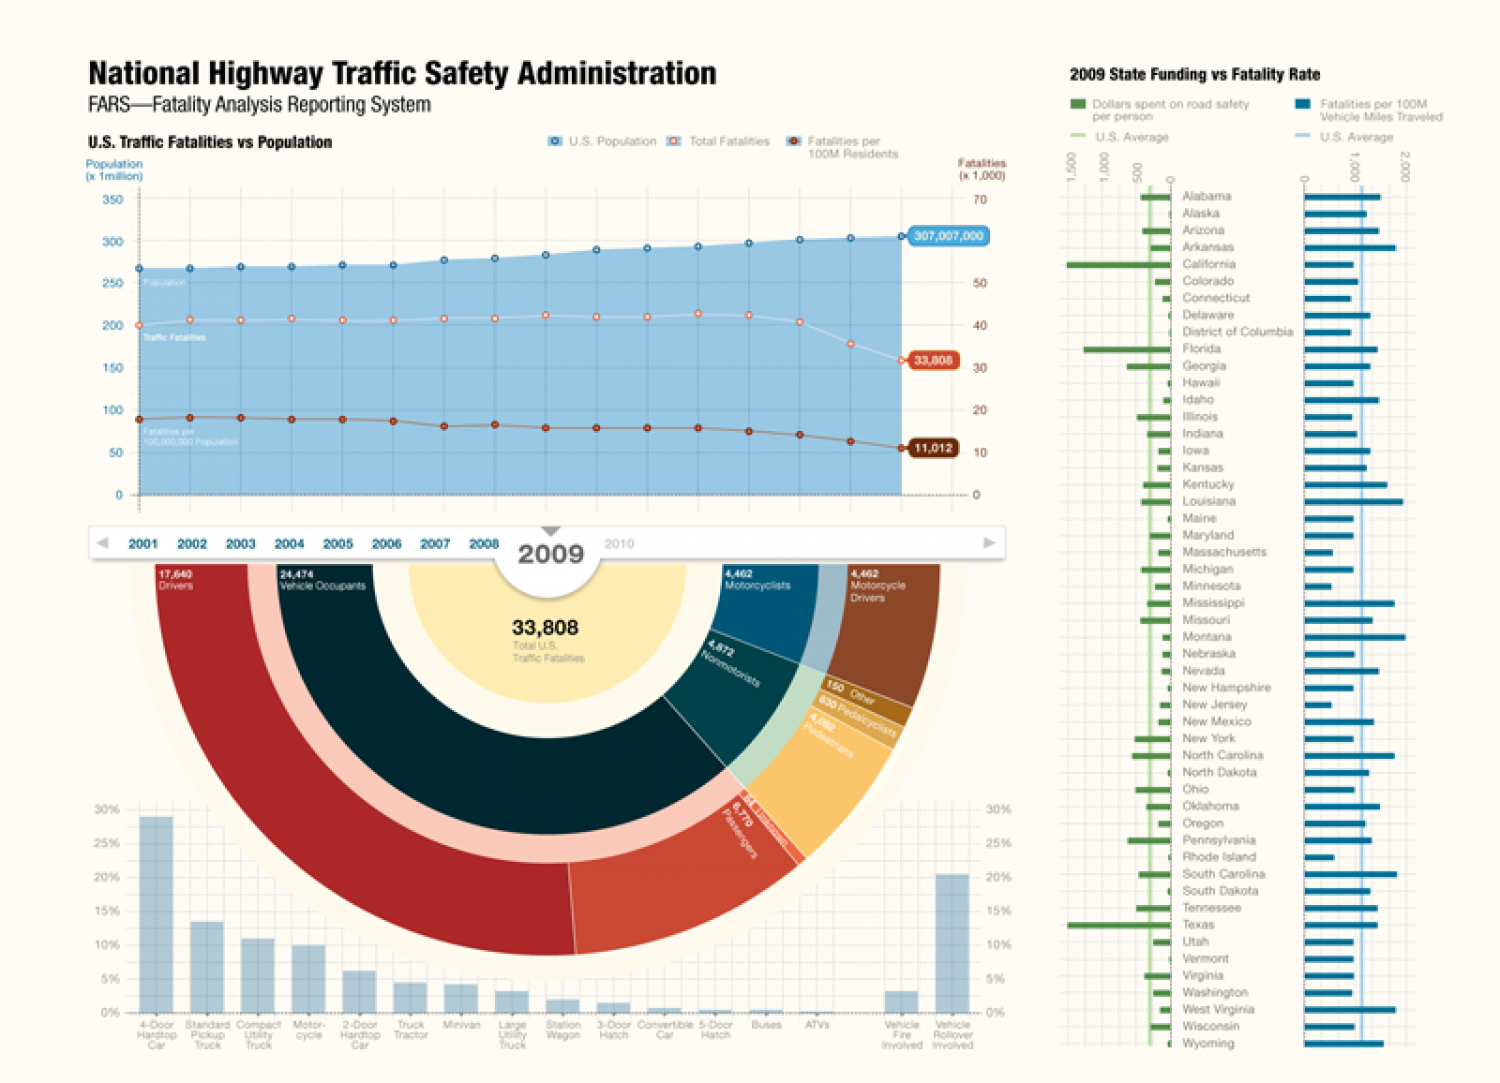 National Highway Traffic Safety Administration (NHTSA) - Fatality Analysis Reporting System (FARS) Infographic